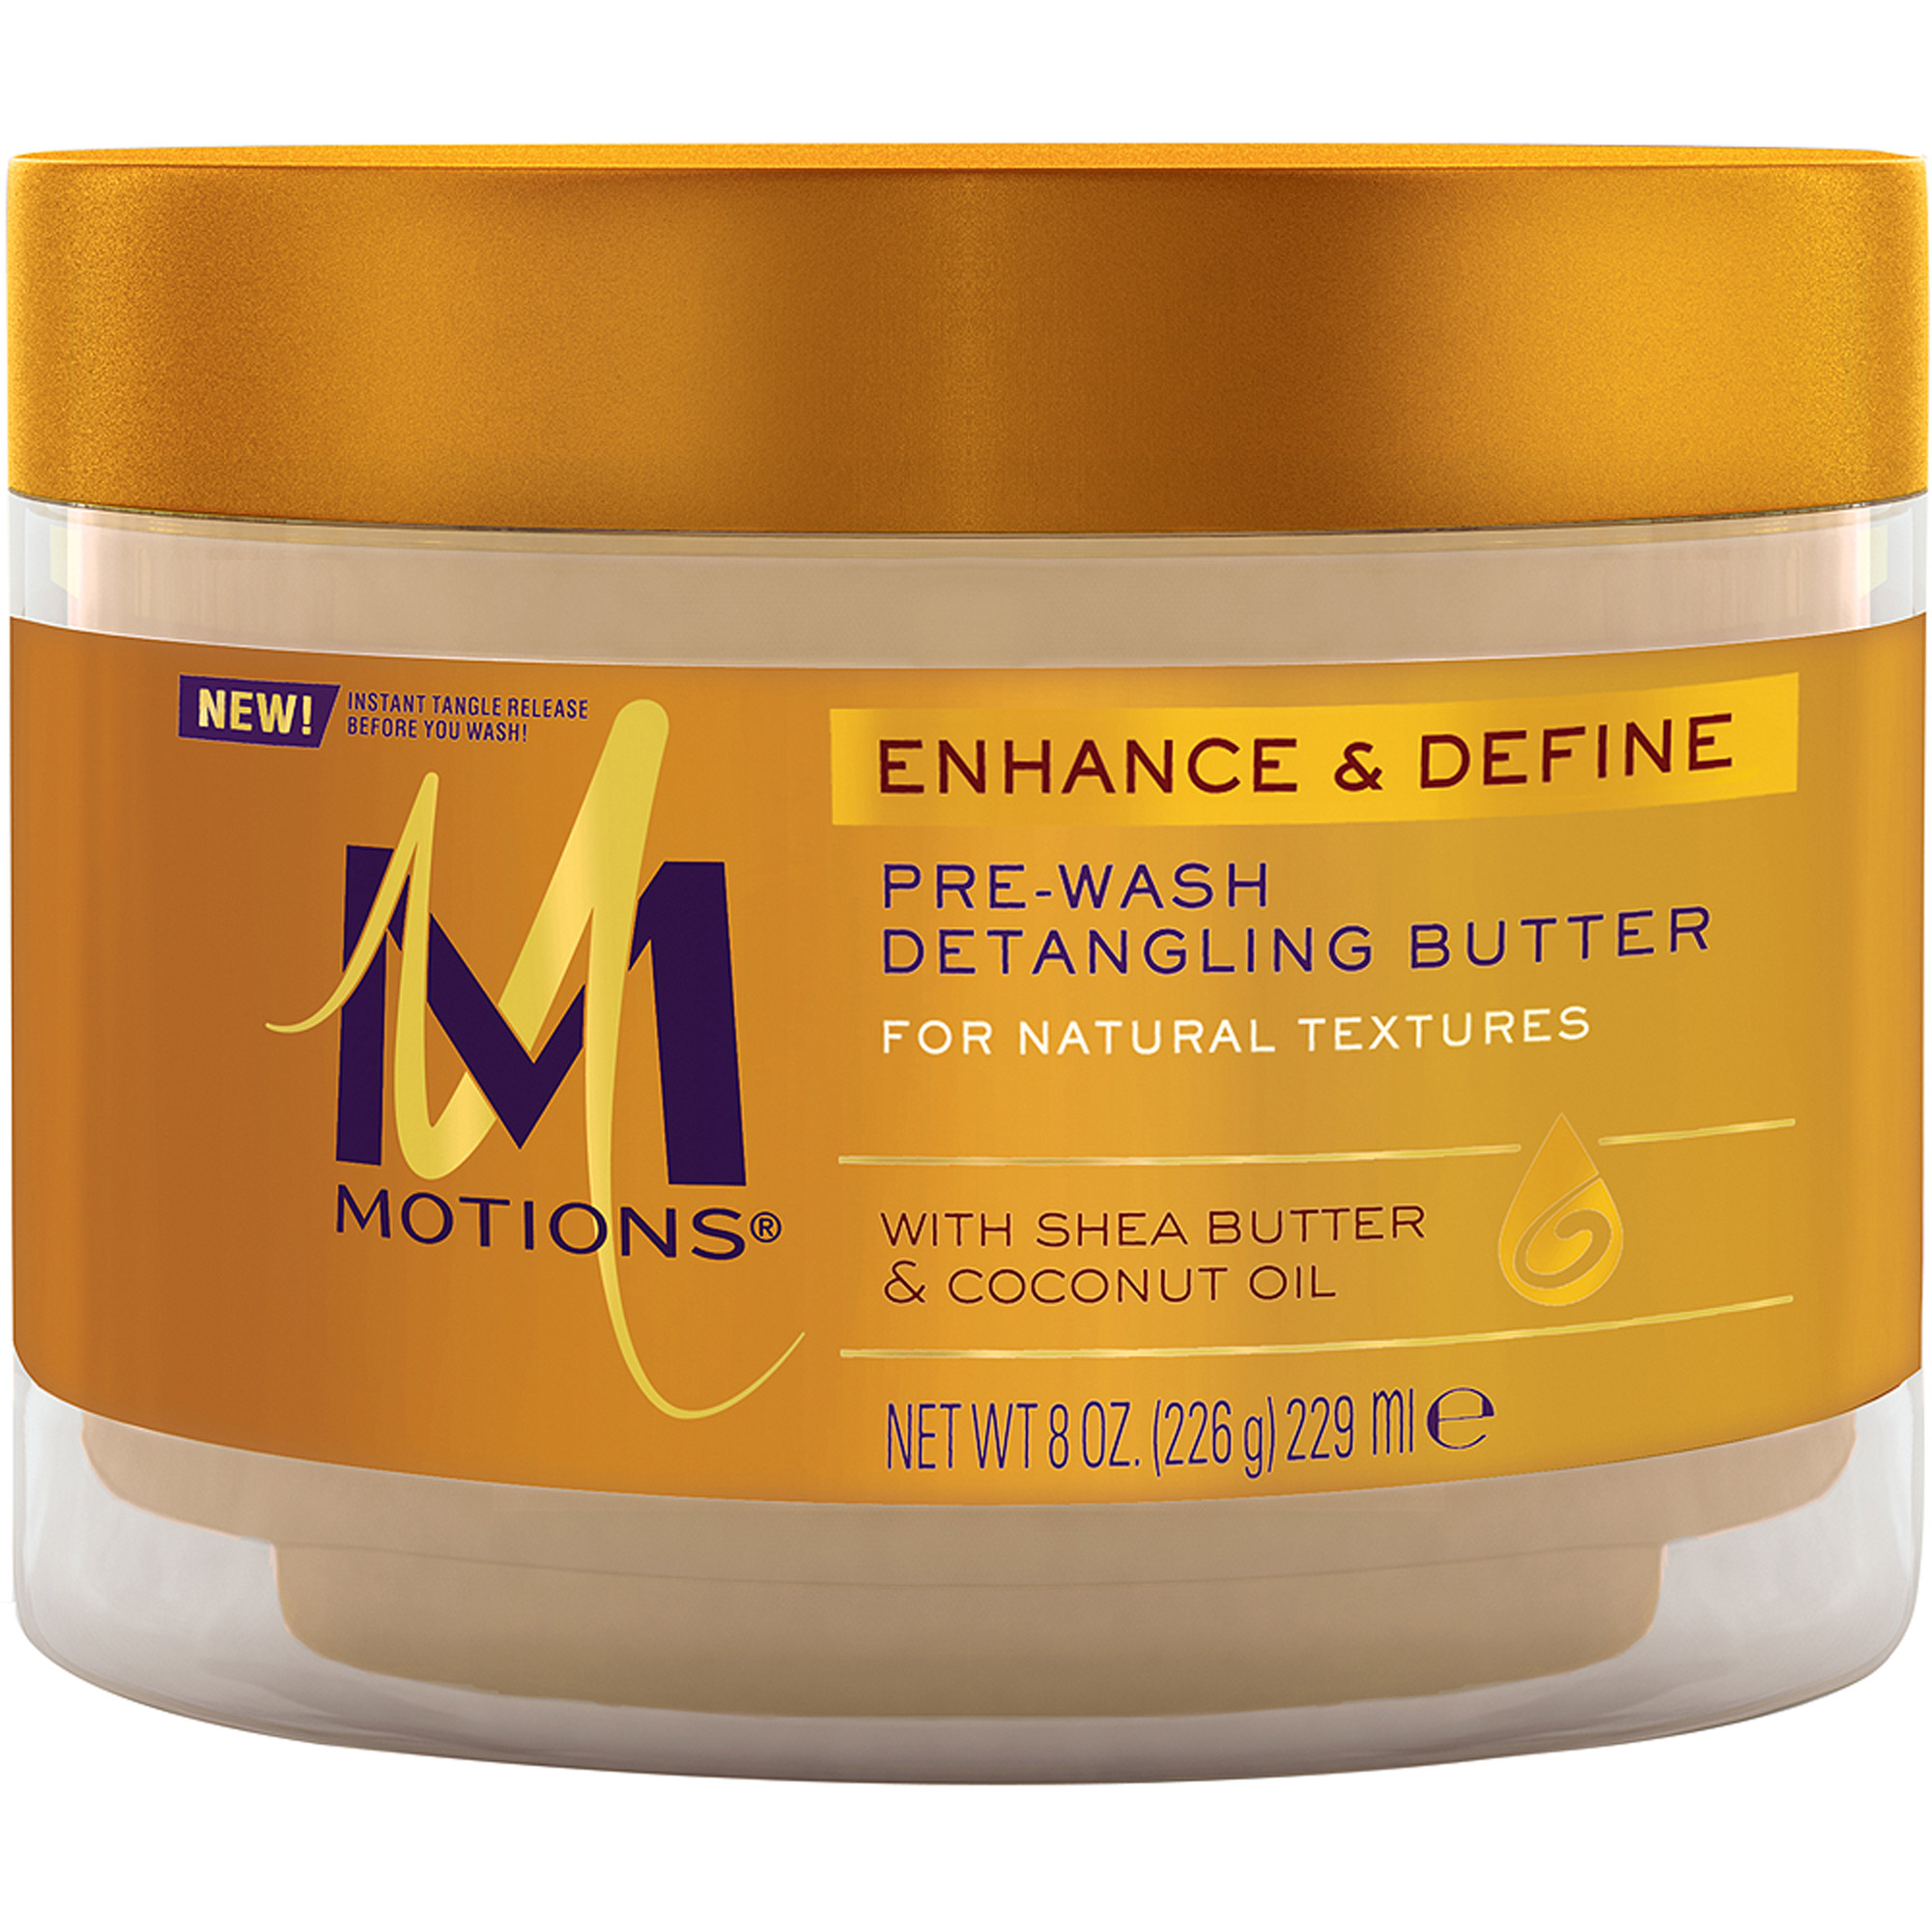 Motions Enhance and Define Pre-Wash Detangling Butter, 8 oz